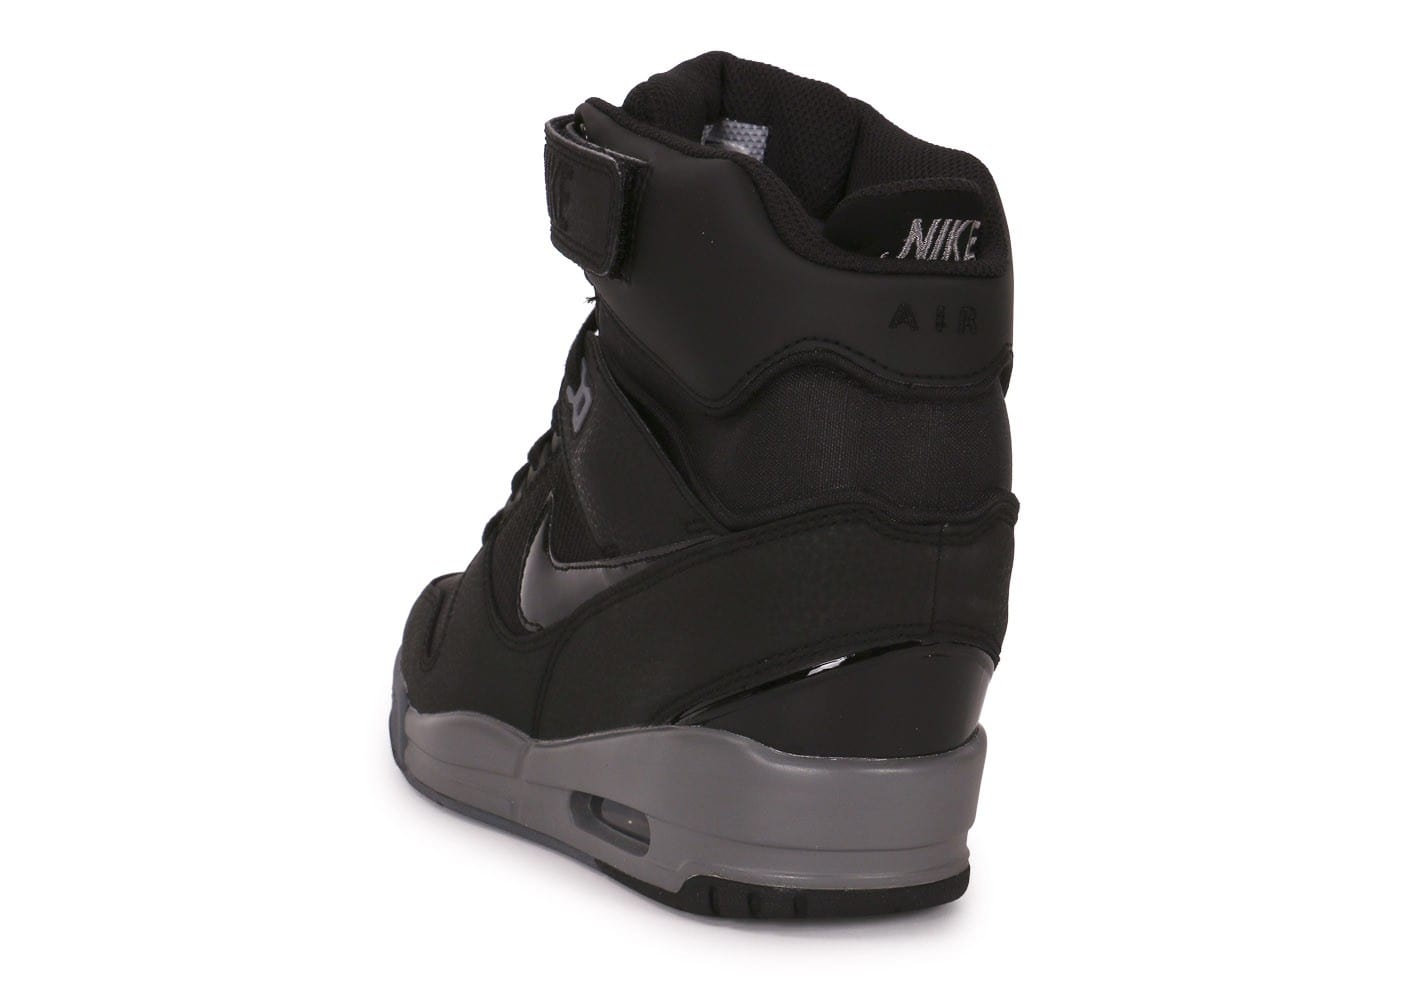 en soldes 4eaa4 bdc20 Nike Air Revolution Sky Hi Noire - Chaussures Chaussures ...